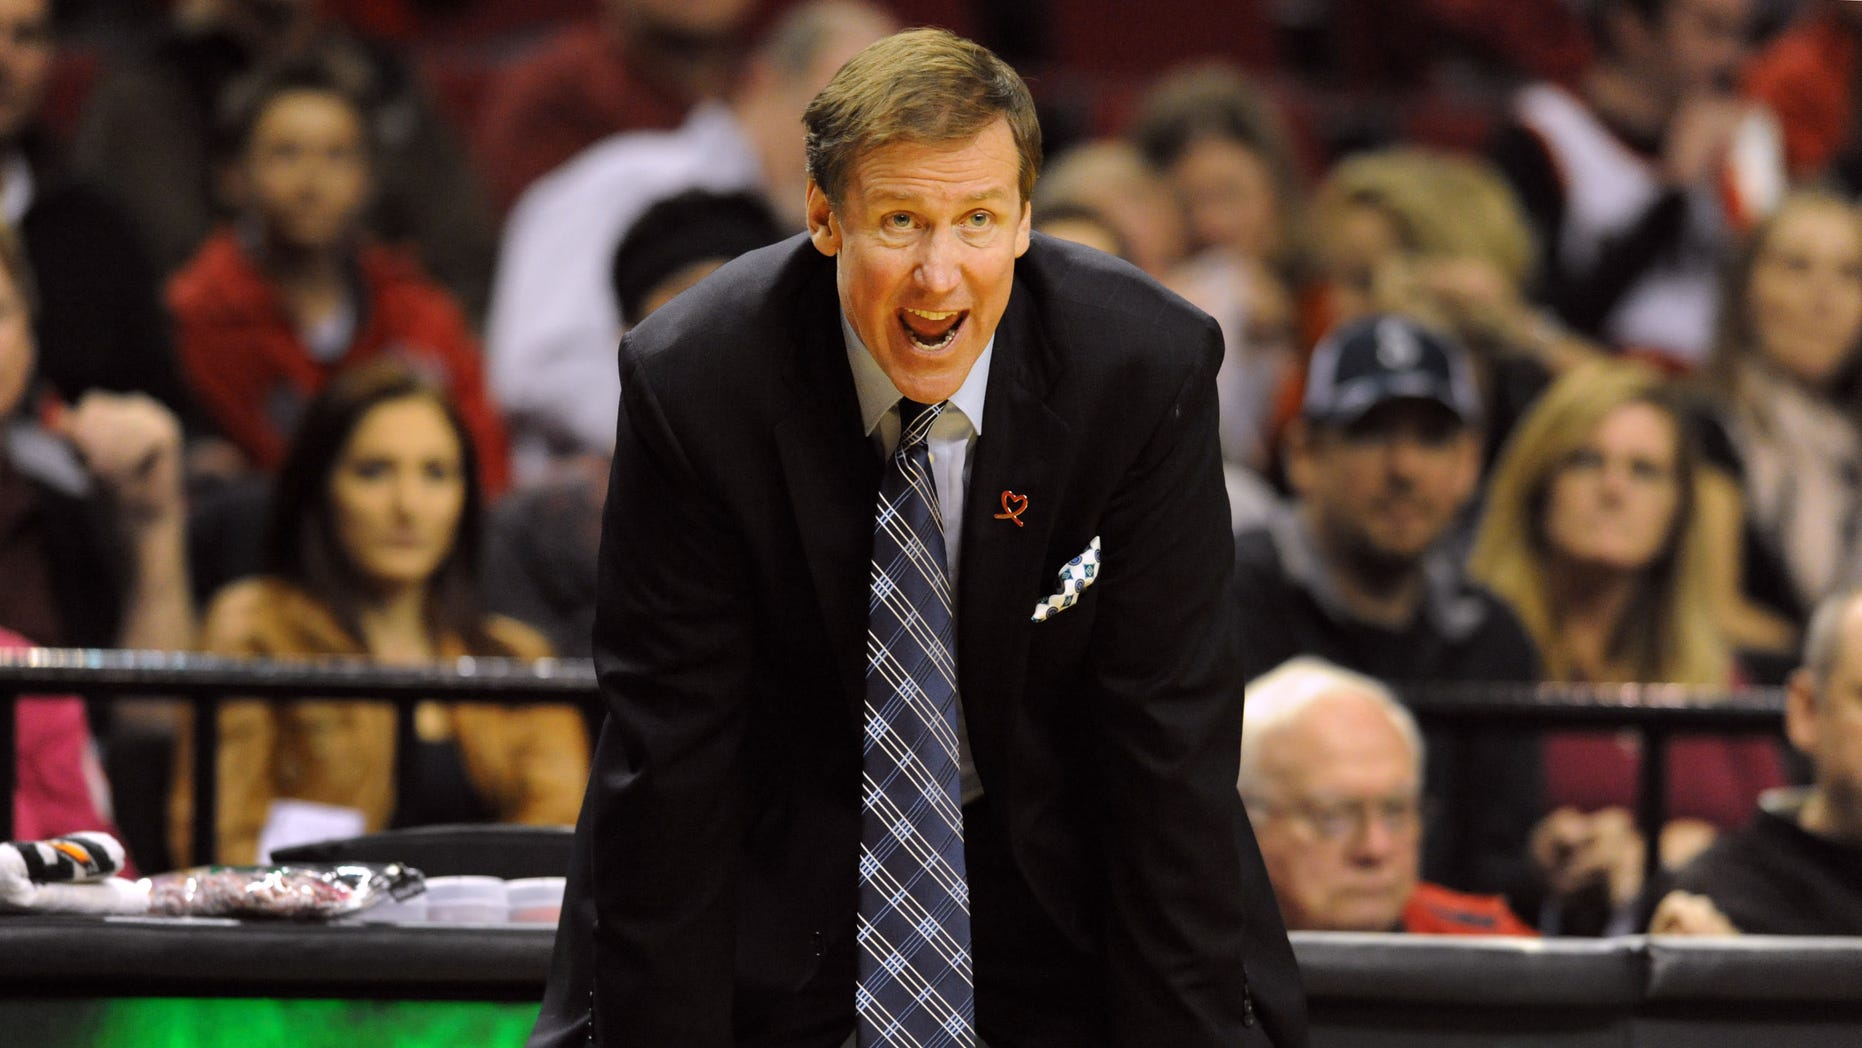 Portland Trail Blazers head coach Terry Stotts yells out to his team during the second half of an NBA basketball game against the Sacramento Kings on Sunday, October 20, 2013, in Portland. Portland won 109-105. (AP Photo/Steve Dykes)